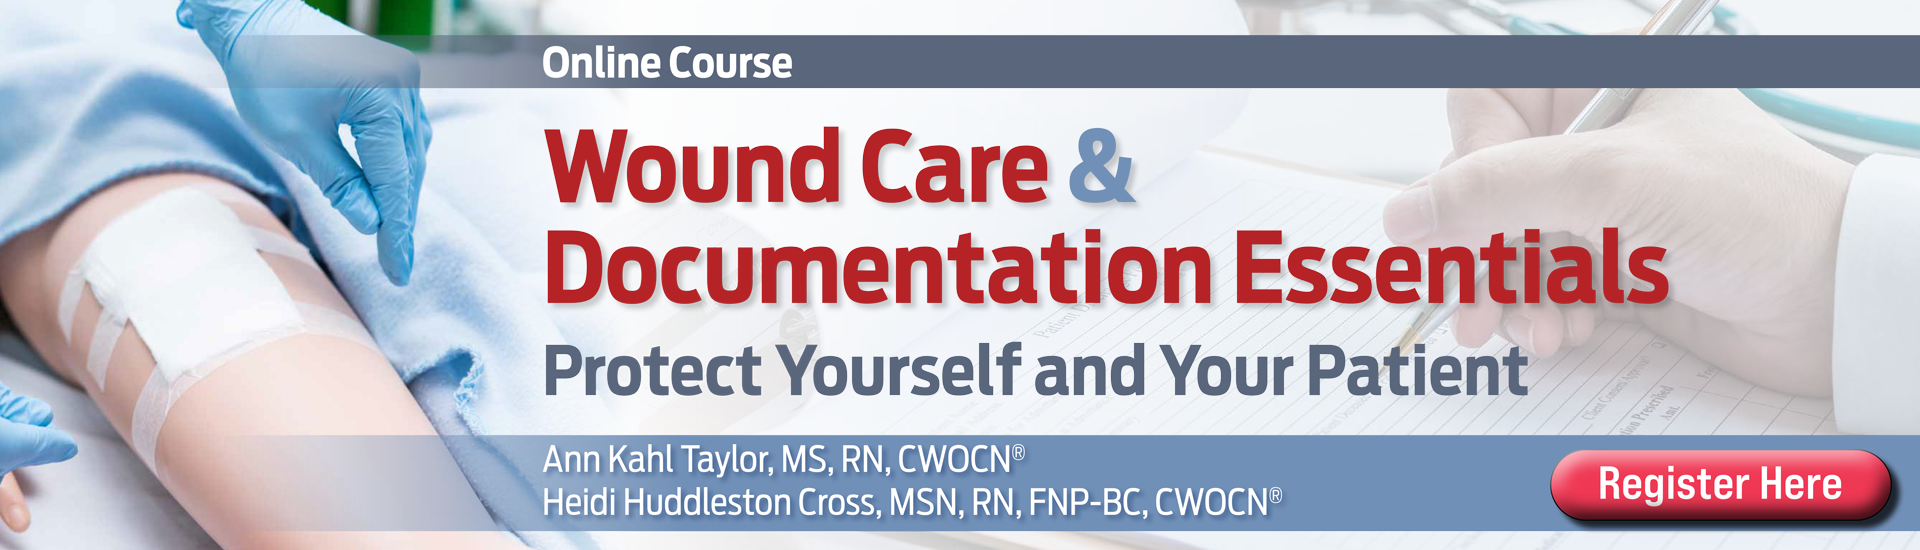 Wound Care and Documentation Essentials Online Course